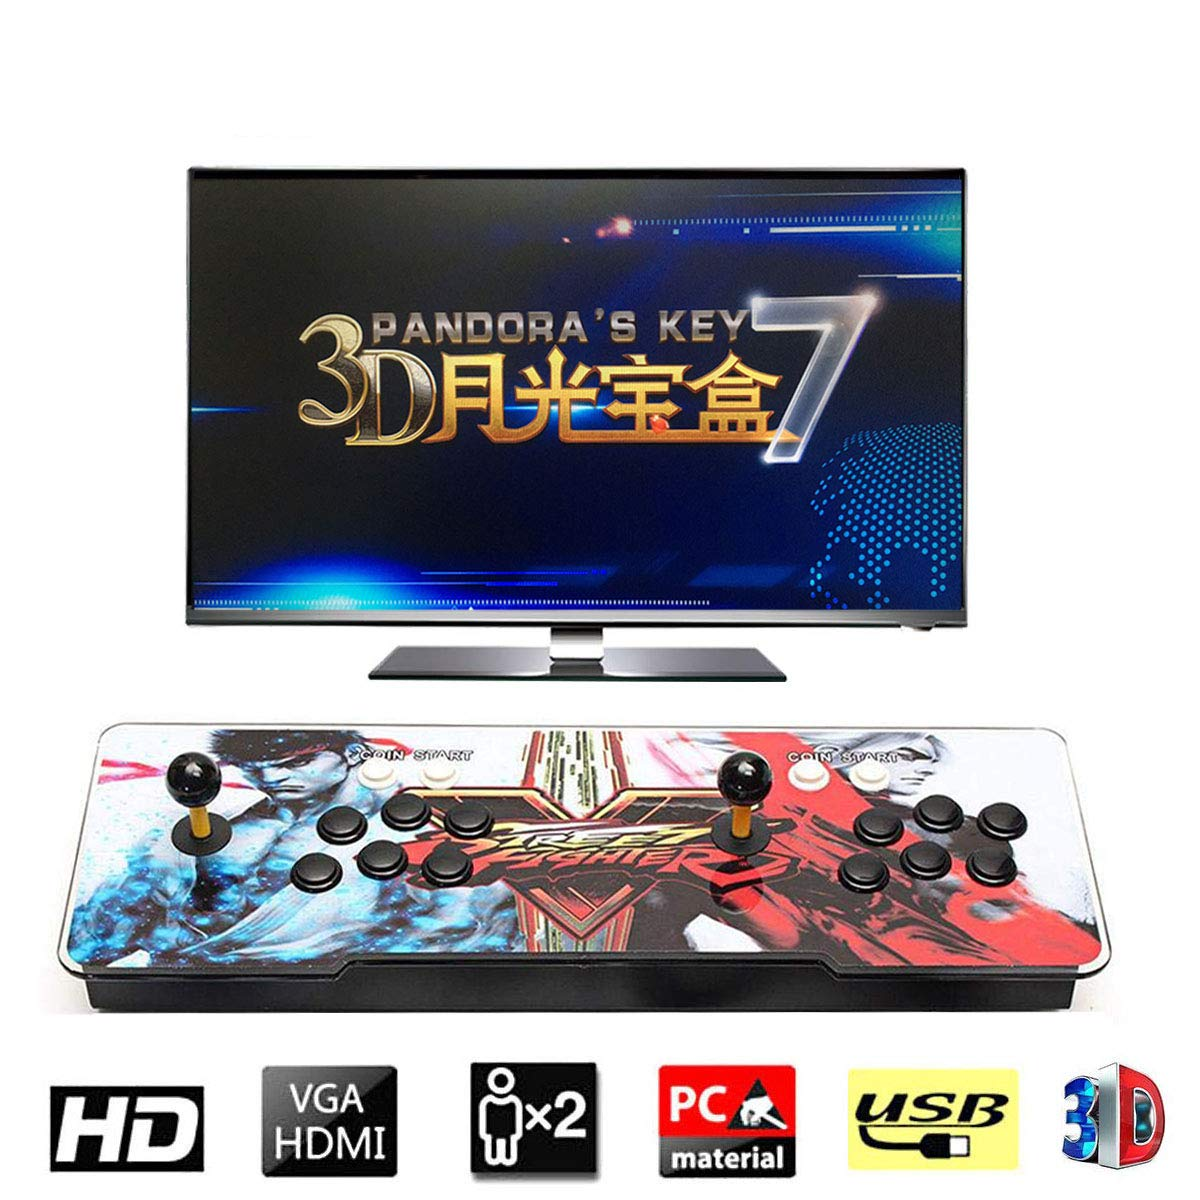 HAAMIIQII Pandora Key 7 3D Home Arcade Game Console | Support 3D Games | Add More Games | Full HD (1920x1080) Video | 2 Player Game Controls | Support 4 Players | HDMI/VGA/USB/AUX Audio Output by HAAMIIQII (Image #1)